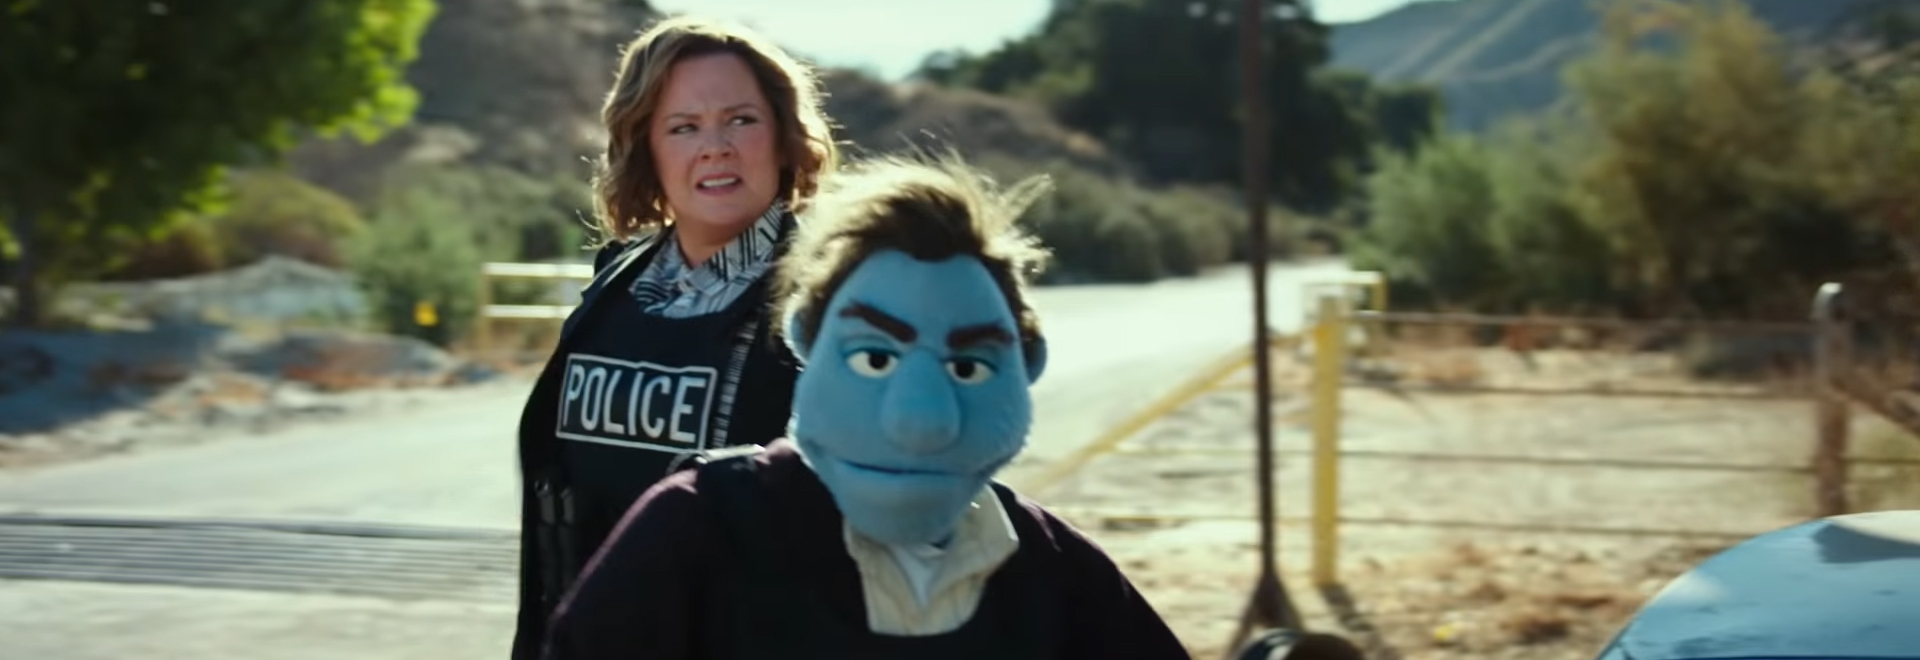 The Happytime Murders: Image Credit: STK Films/Roadshow Films